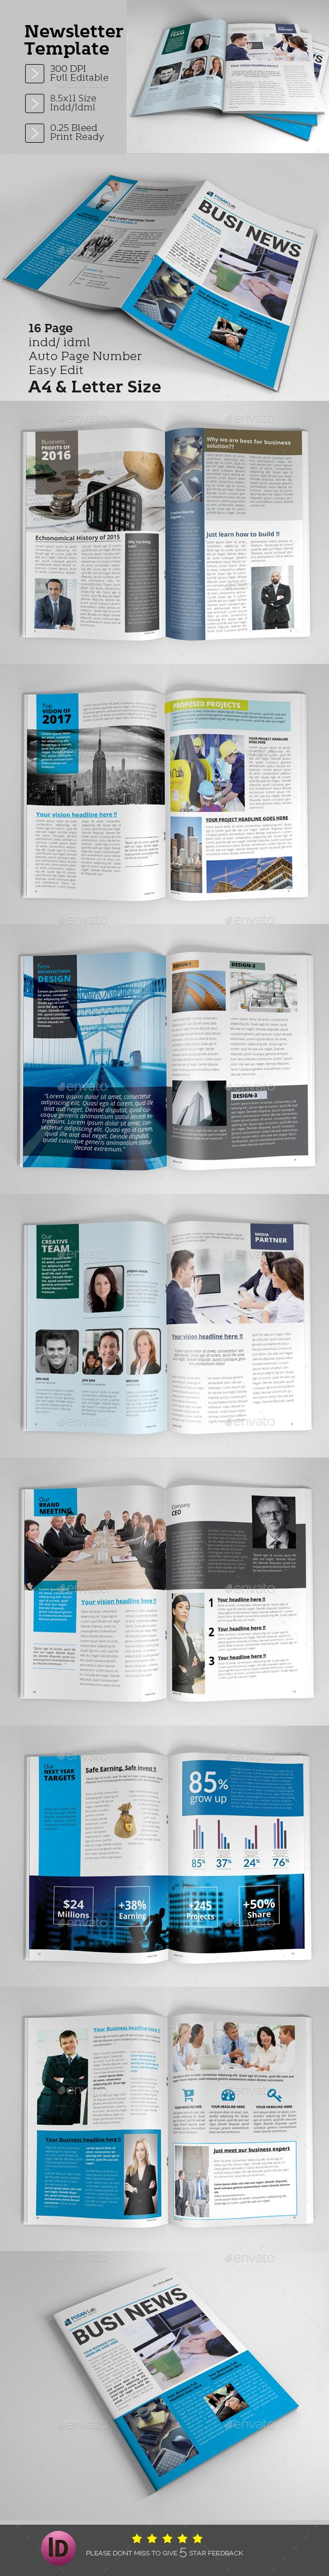 Newsletter Template  - Newsletters Print Templates Download here…